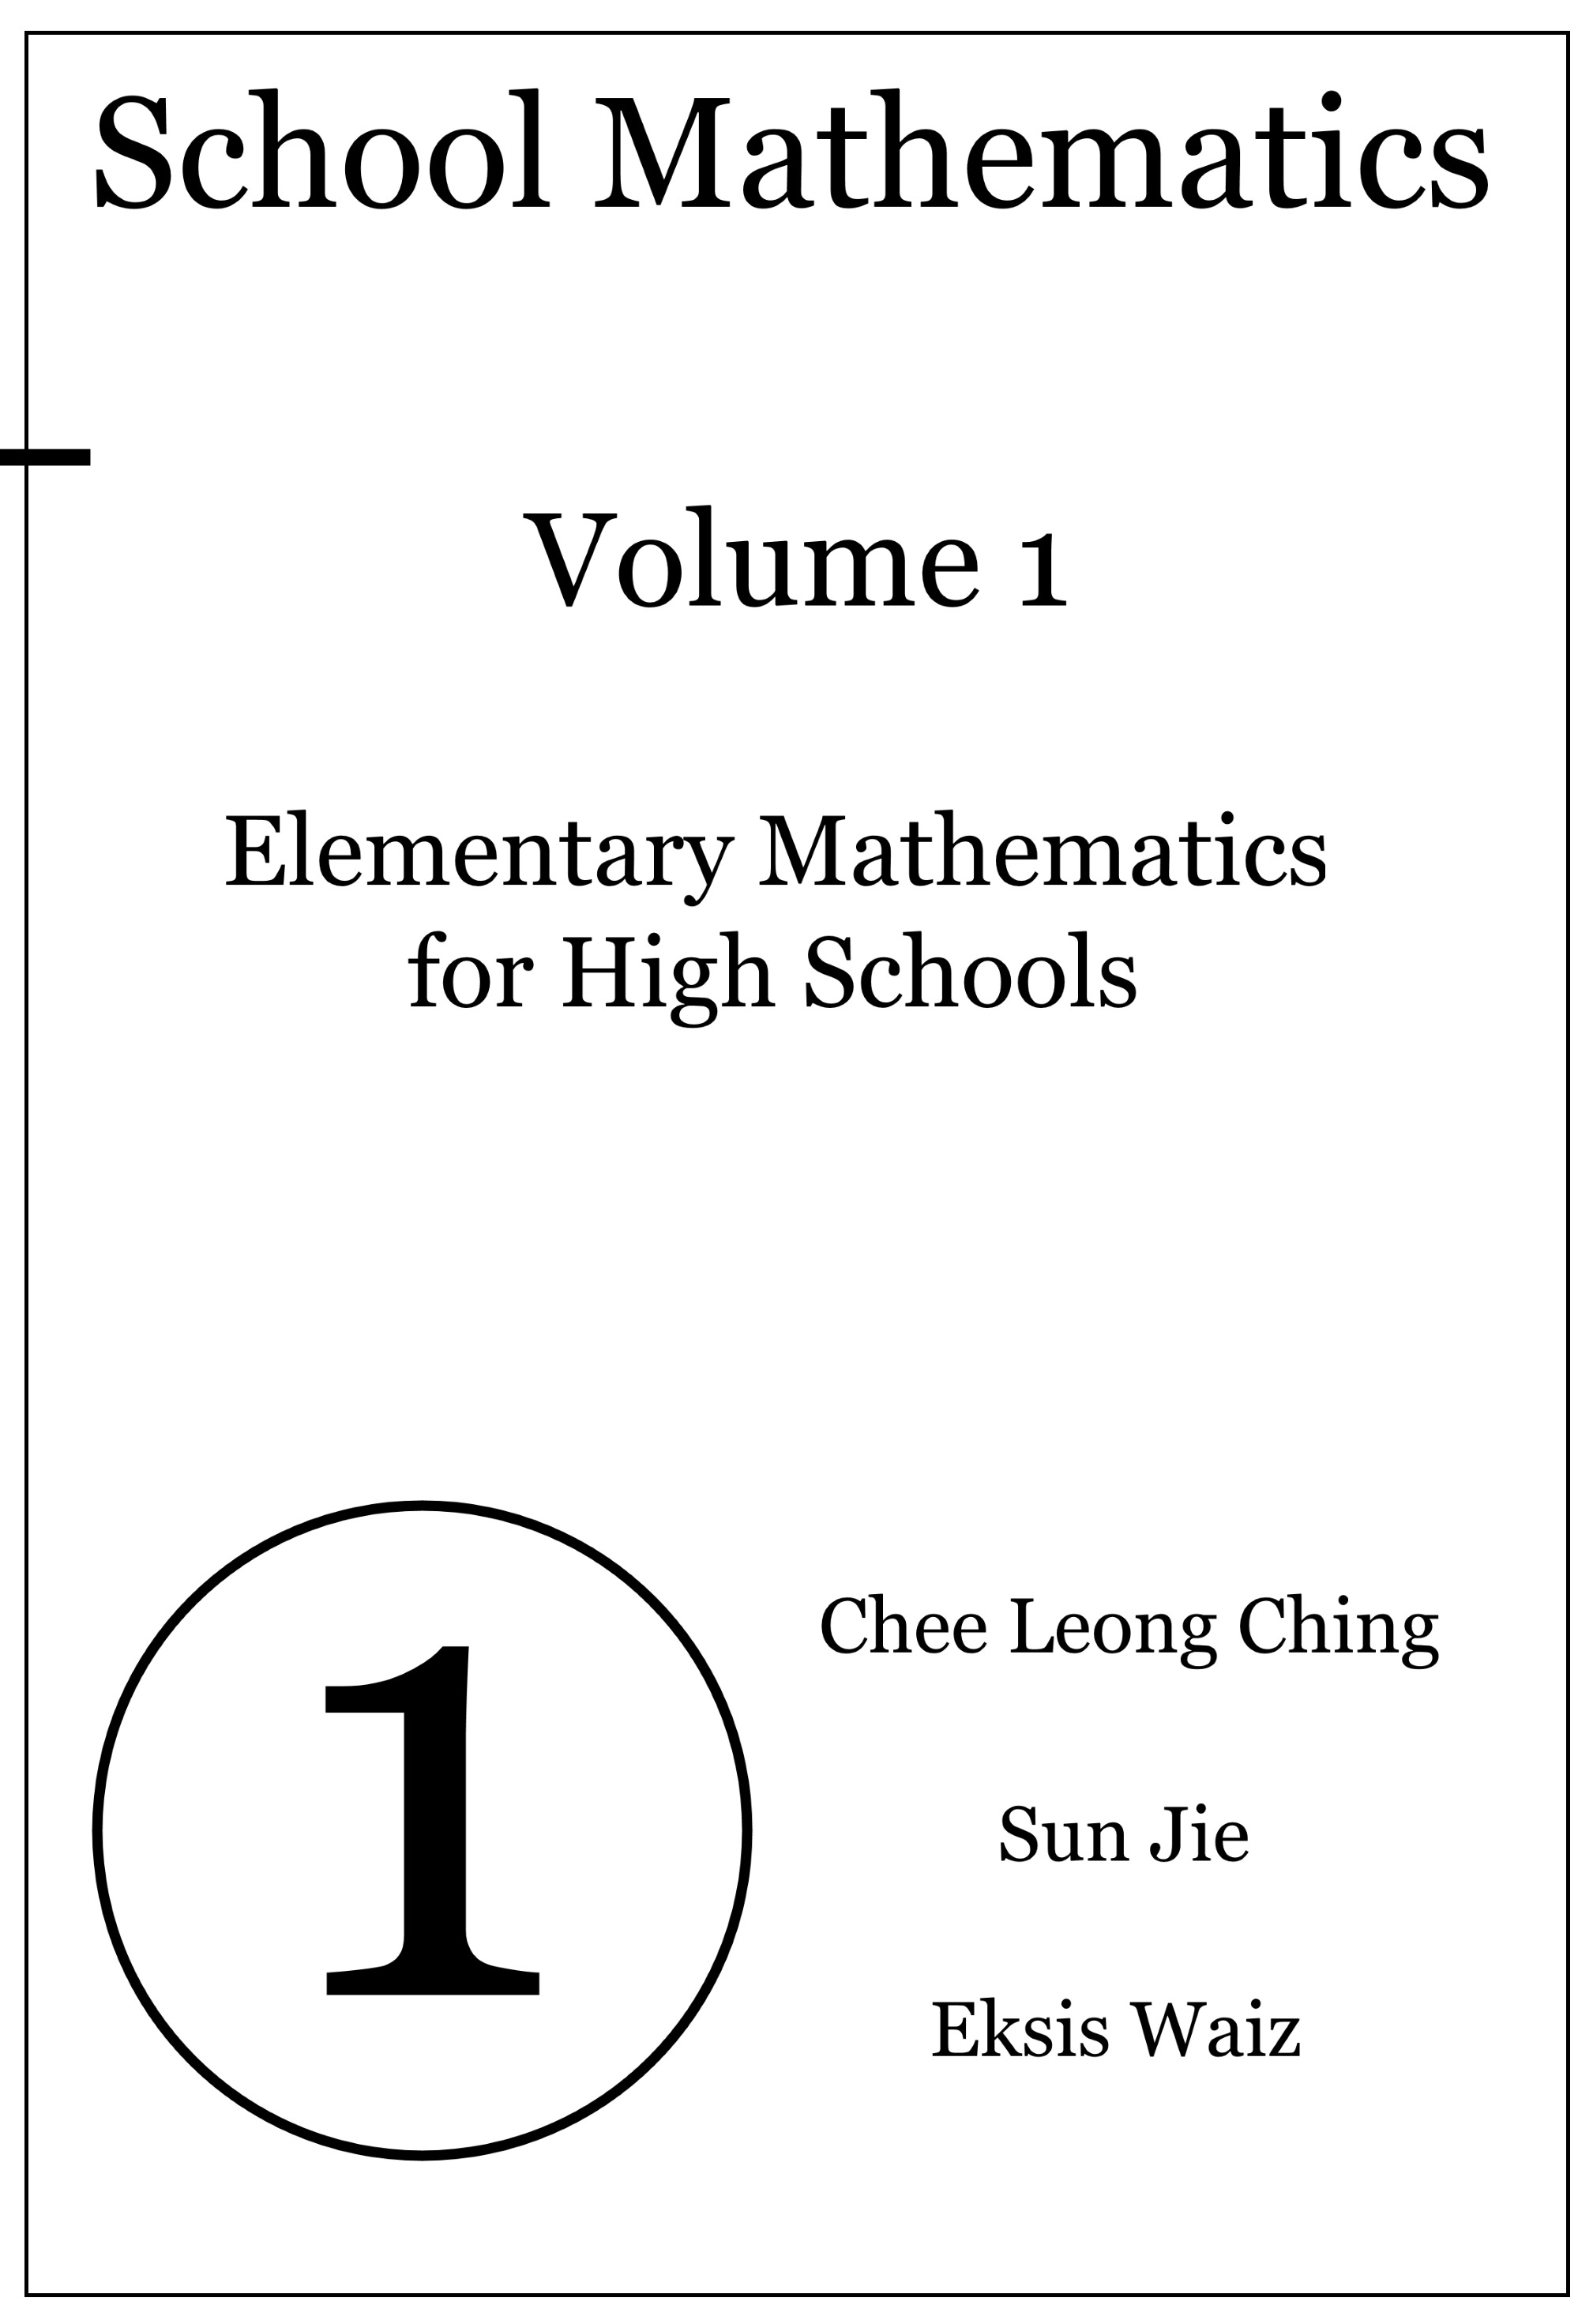 School Mathematics : Volume 1, Elementary Mathematics for High Schools.  by  Chee Leong Ching